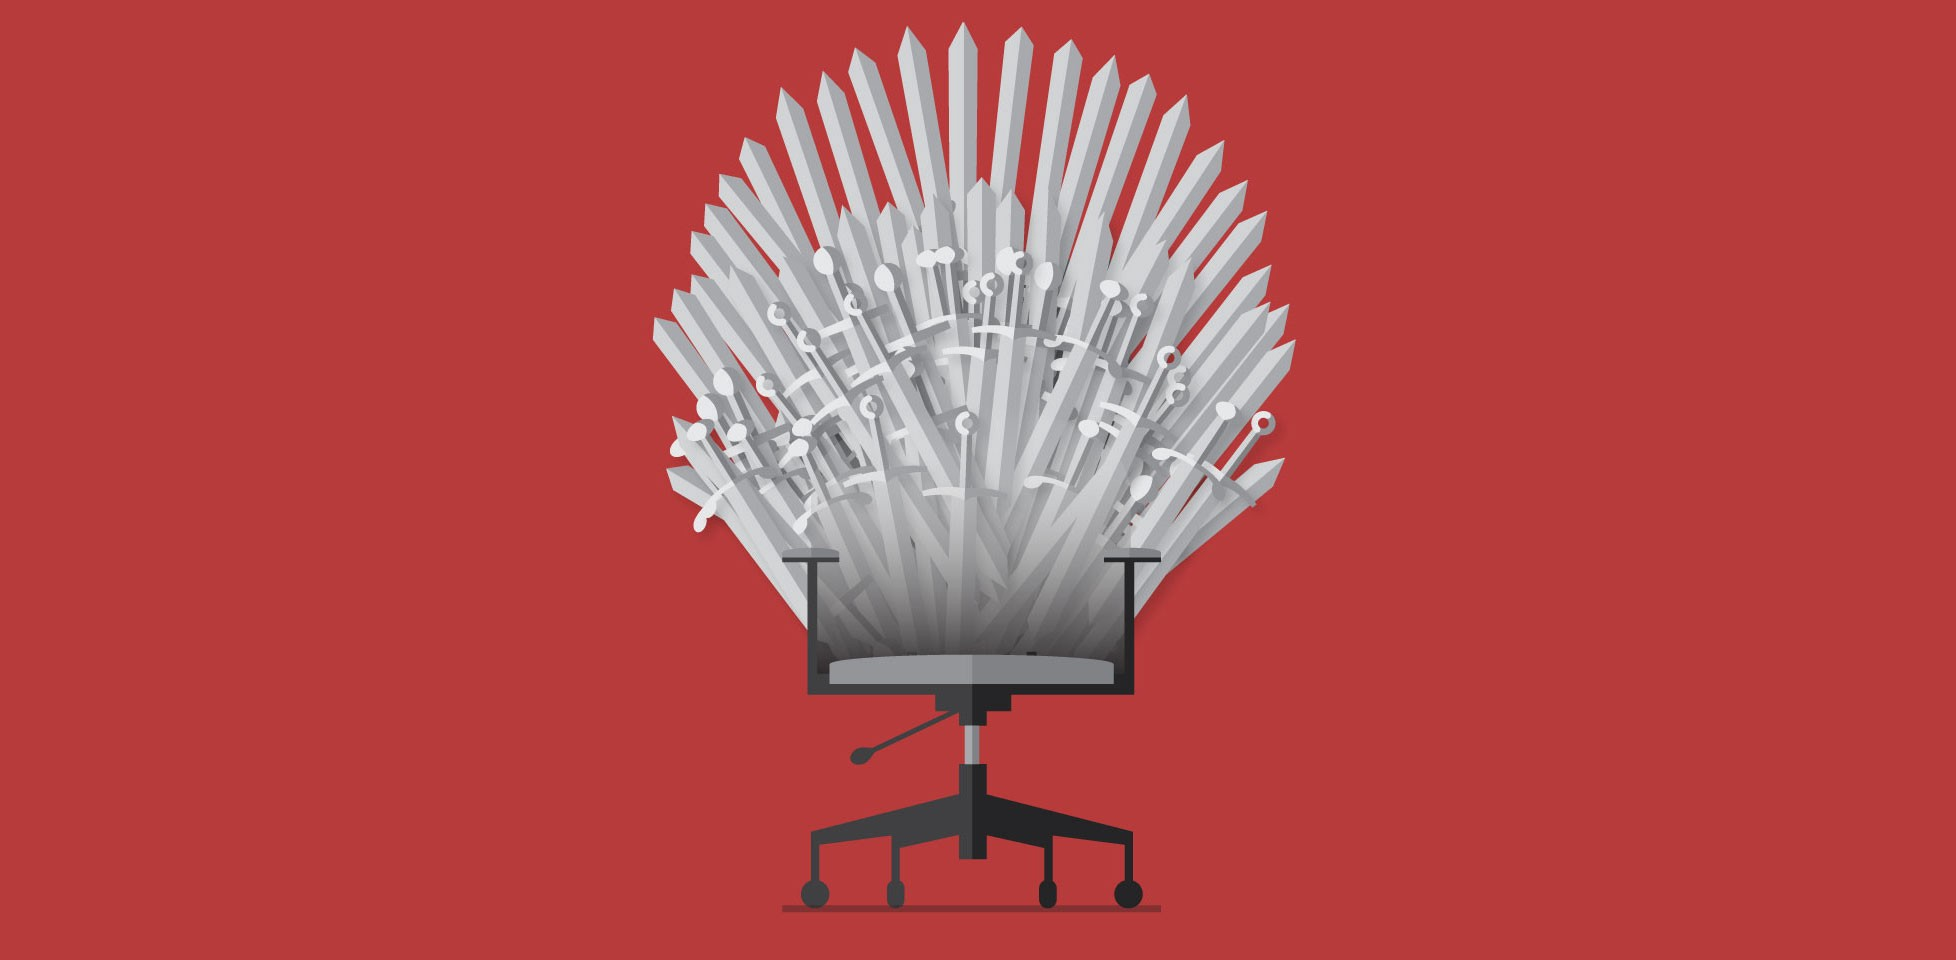 Game Of Thrones lessons for designers